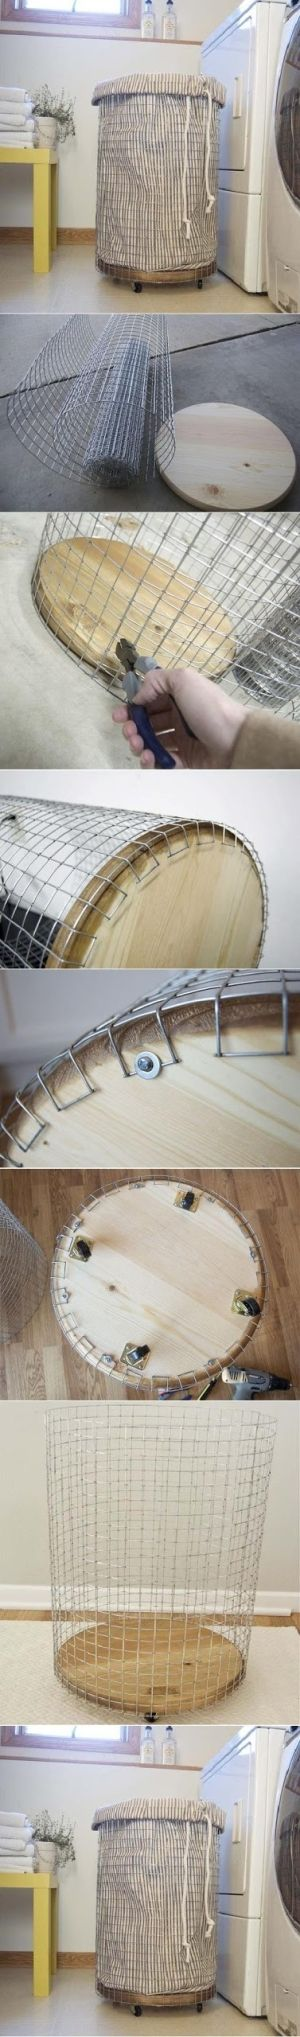 DIY : How To Make a Laundry Basket by Hairstyle Tutorials